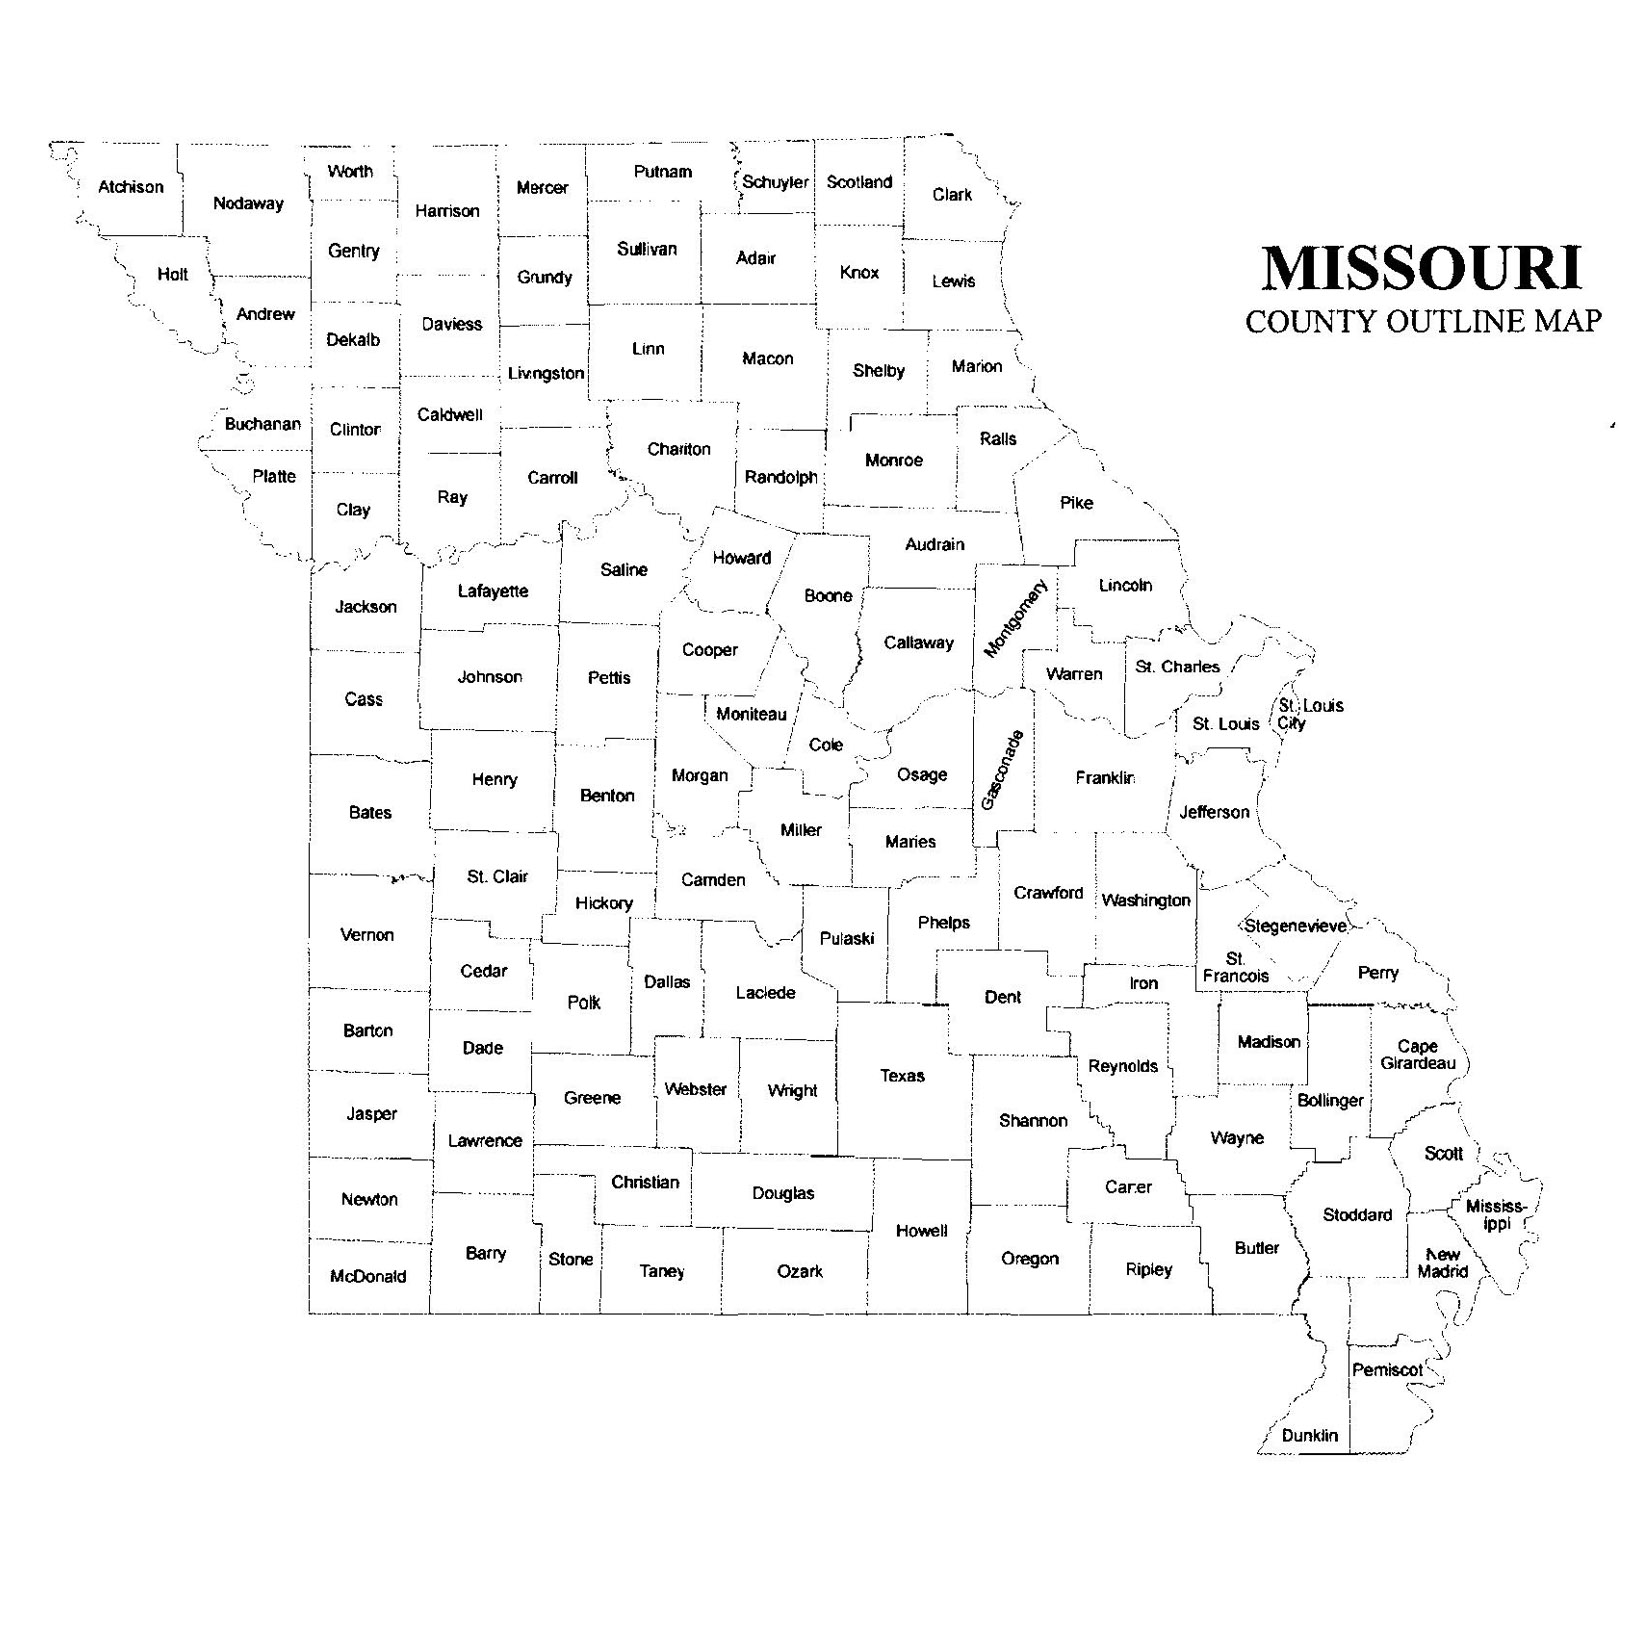 Missouri County Map – Jigsaw-Genealogy on government of missouri, large map of missouri, detailed road map of missouri, topographic map of missouri, geologic map of missouri, printable map of missouri, continent map of missouri, google map of missouri, towns of missouri, map of arkansas and missouri, highway map of missouri, area code map of missouri, lake map of missouri, us map of missouri, soil map of missouri, political map of missouri, zip map of missouri, schools of missouri, show map of missouri, full map of missouri,